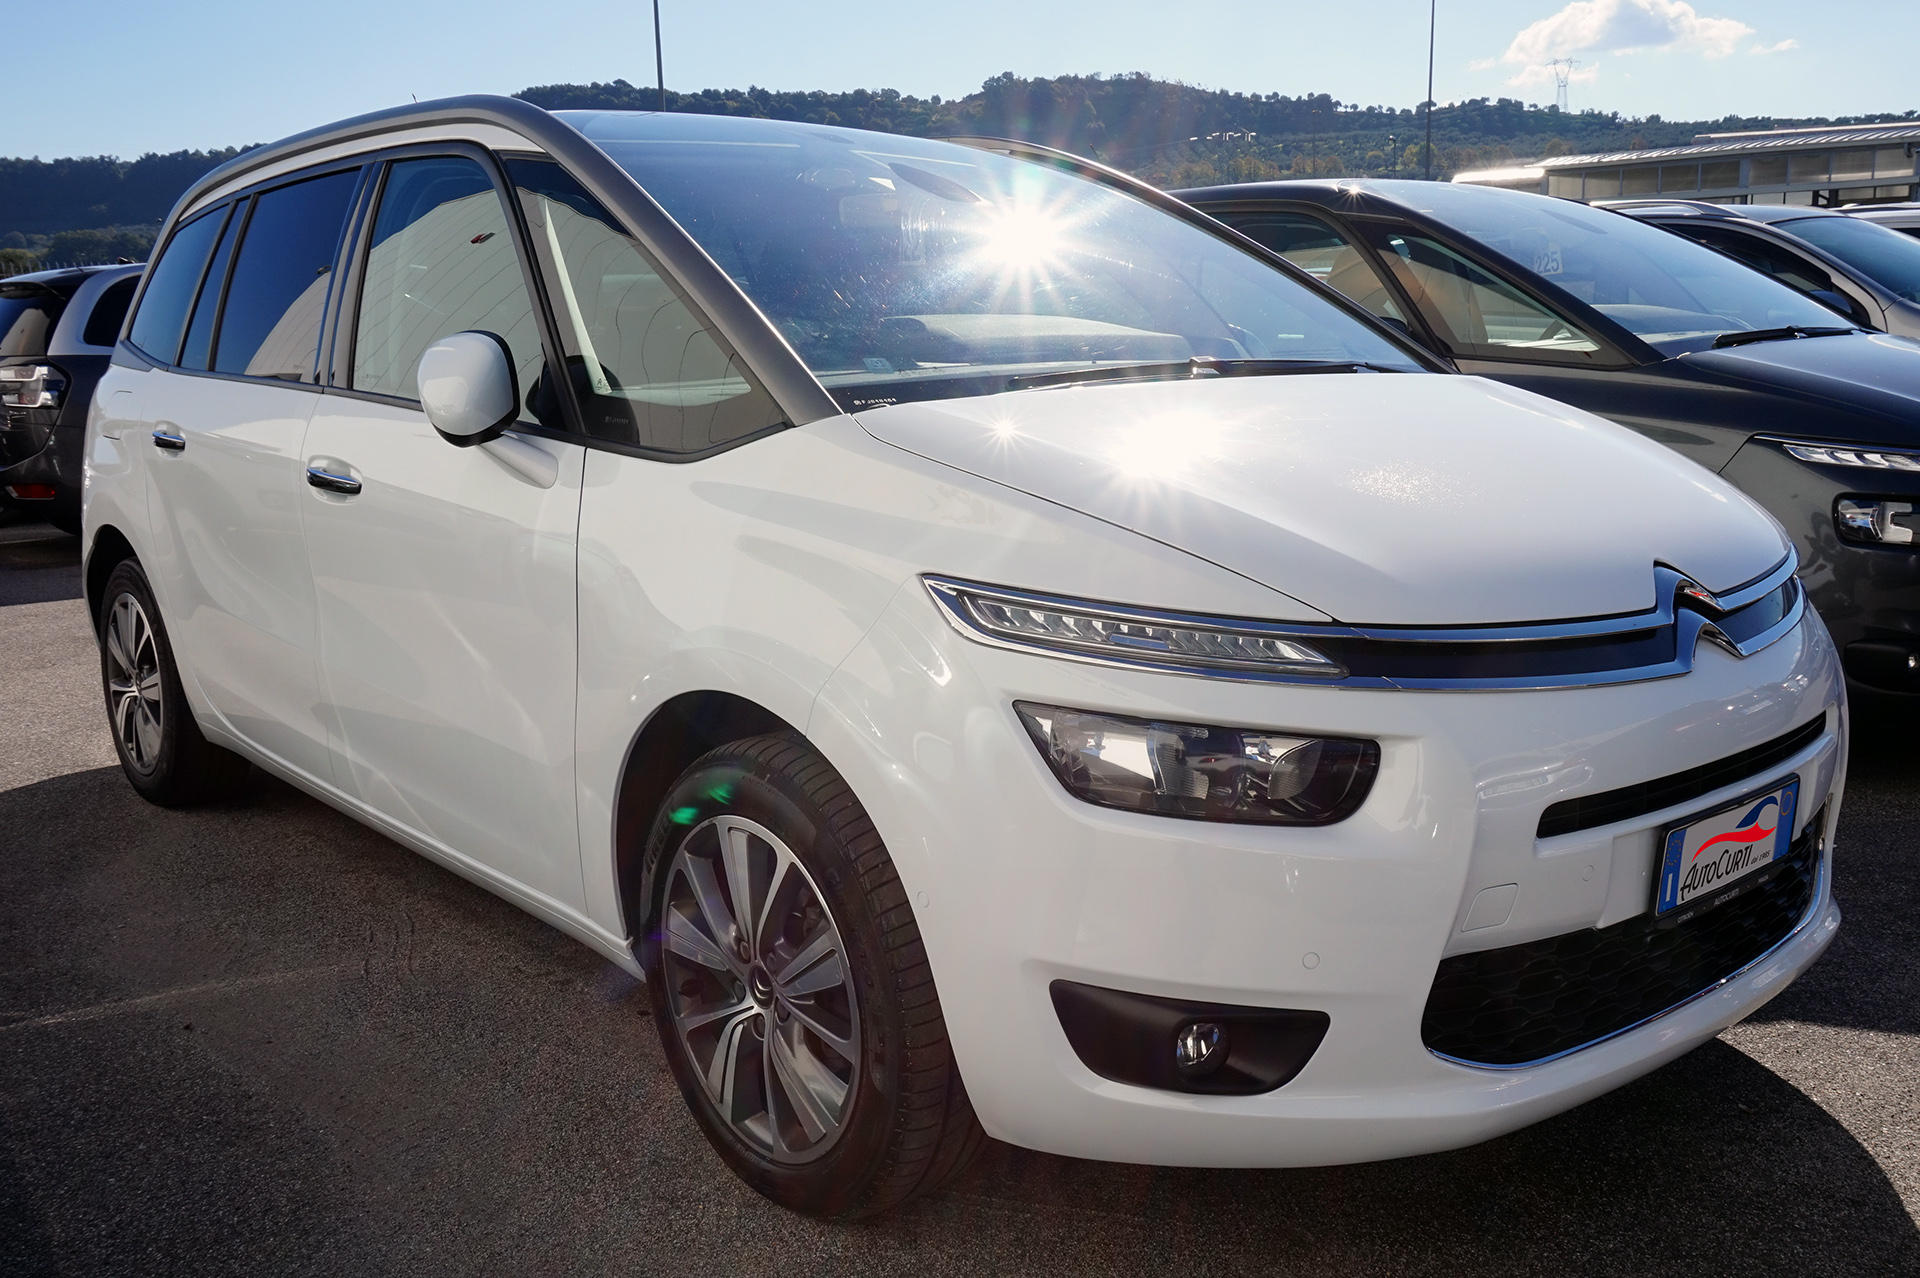 citroen c4 picasso bluehdi 120 s s intensive. Black Bedroom Furniture Sets. Home Design Ideas